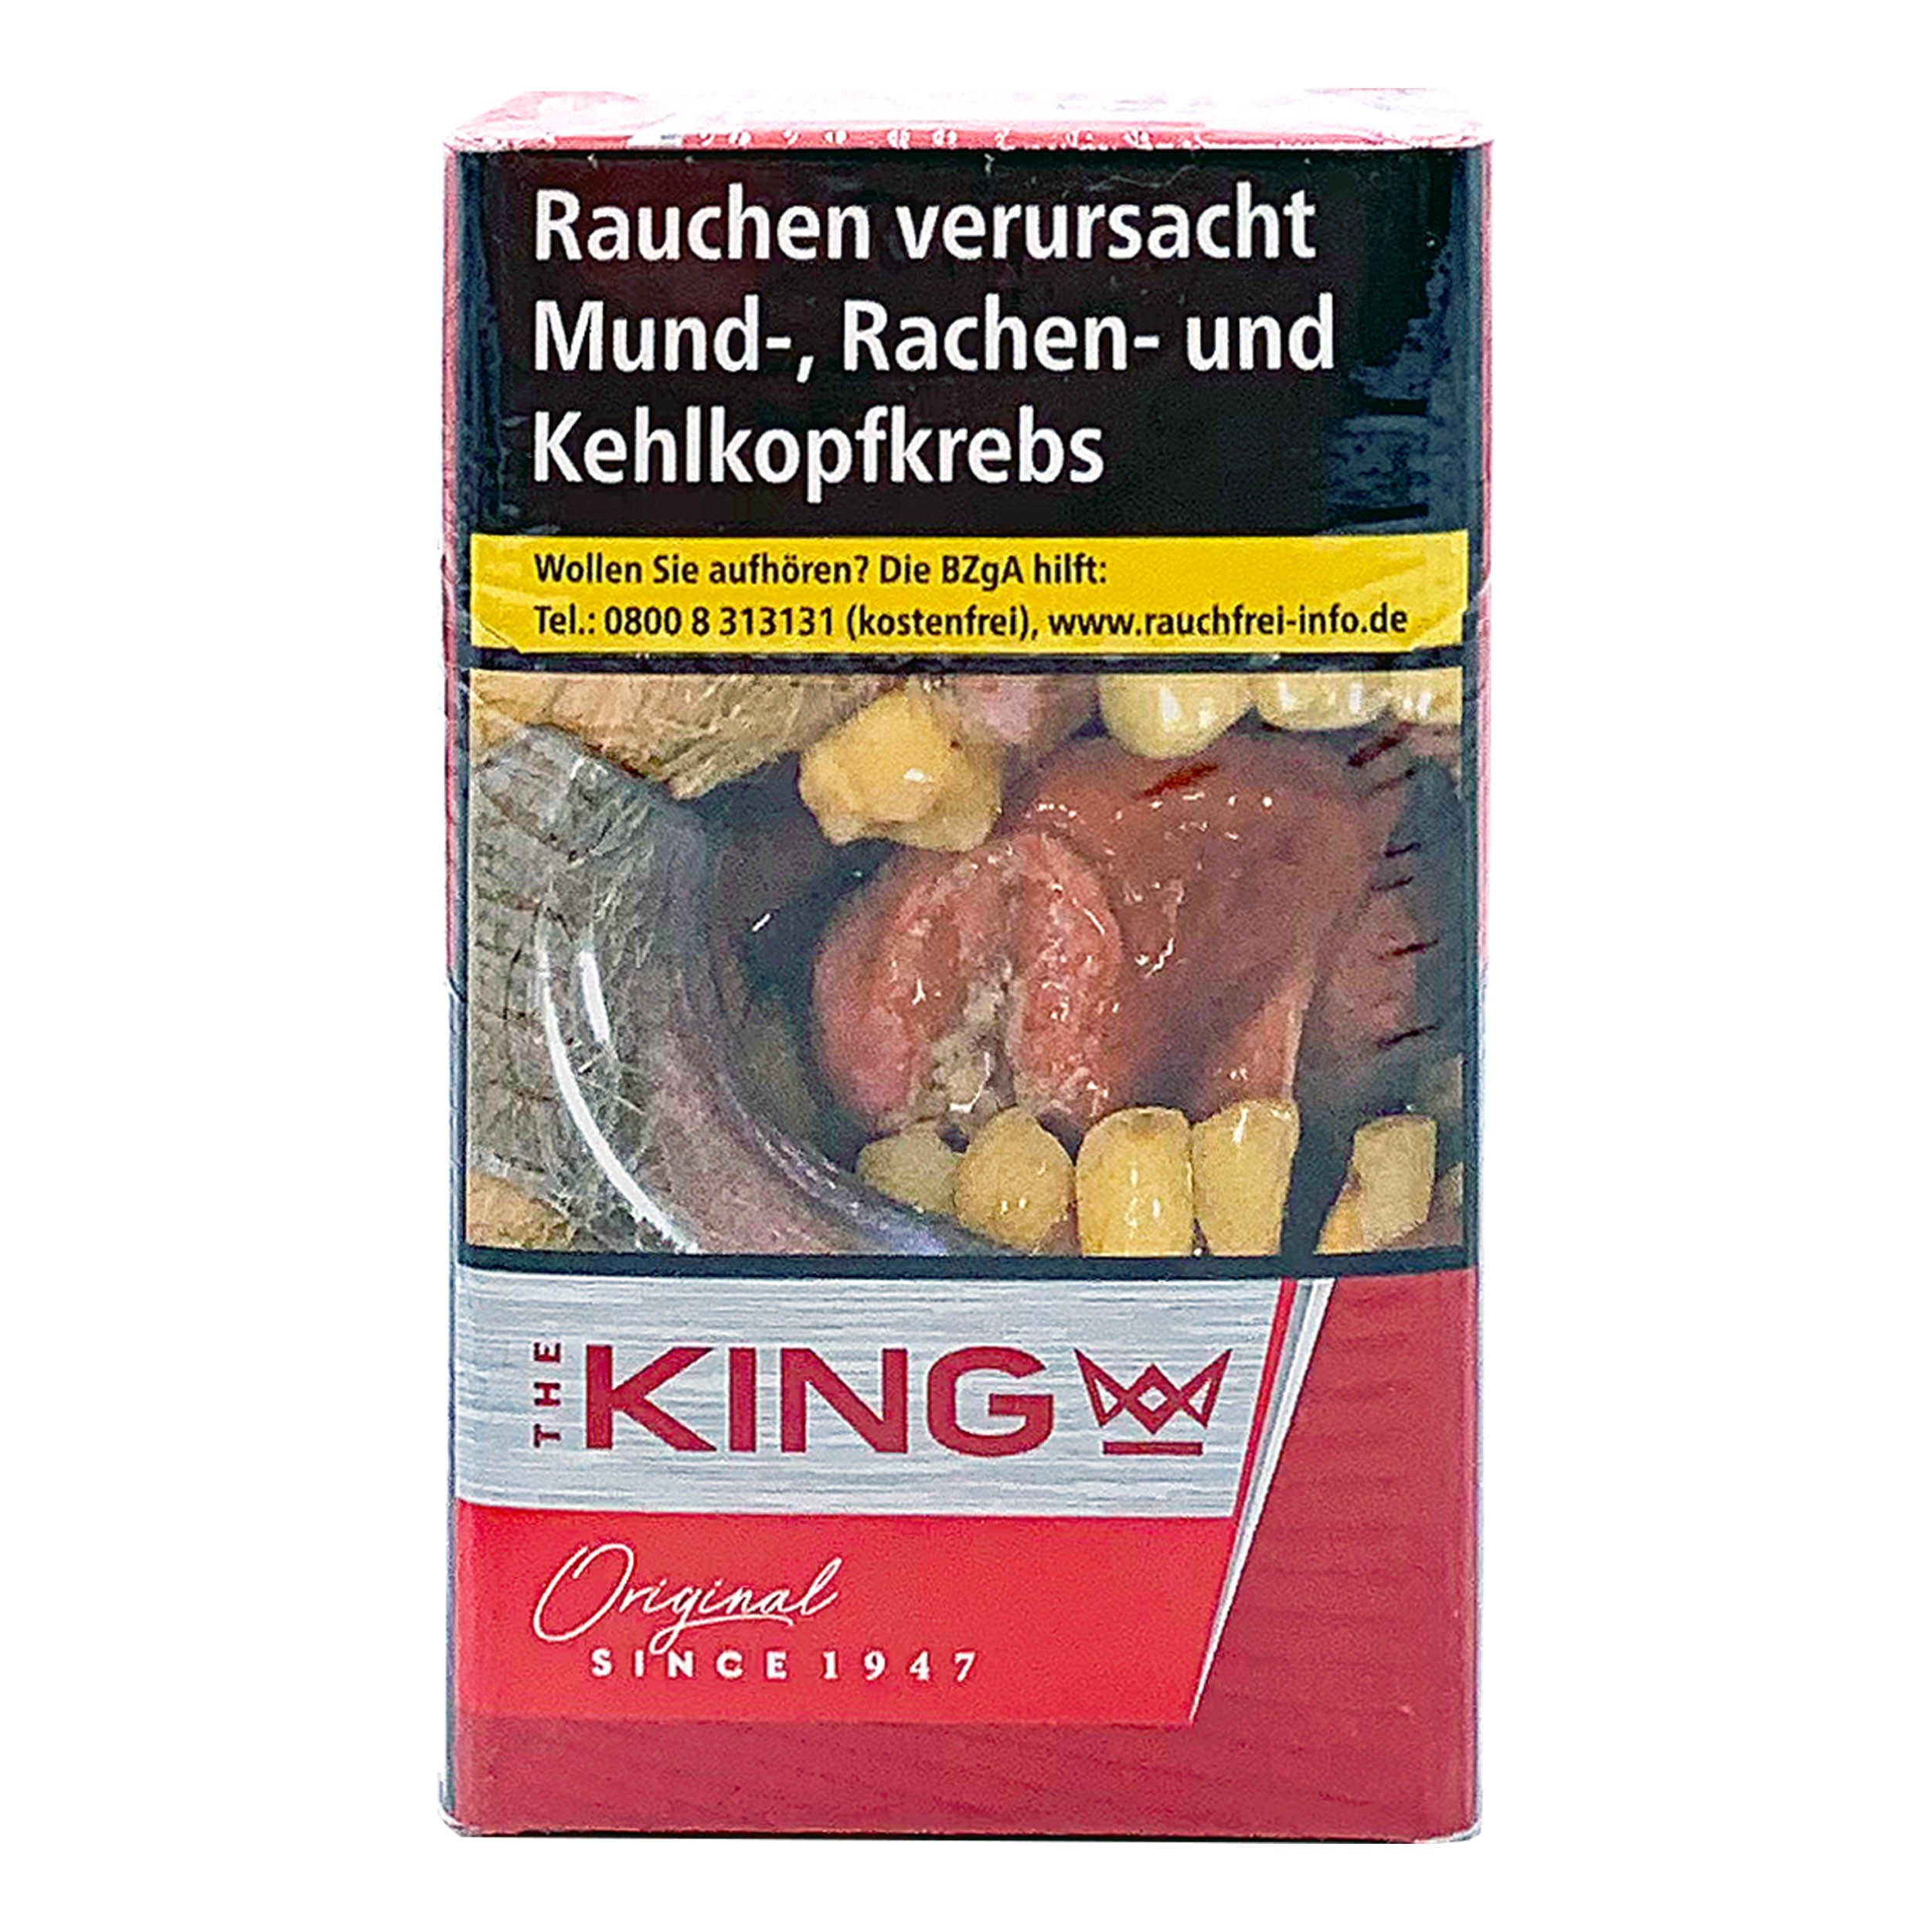 The King Red King Size Zigaretten 20 Stück